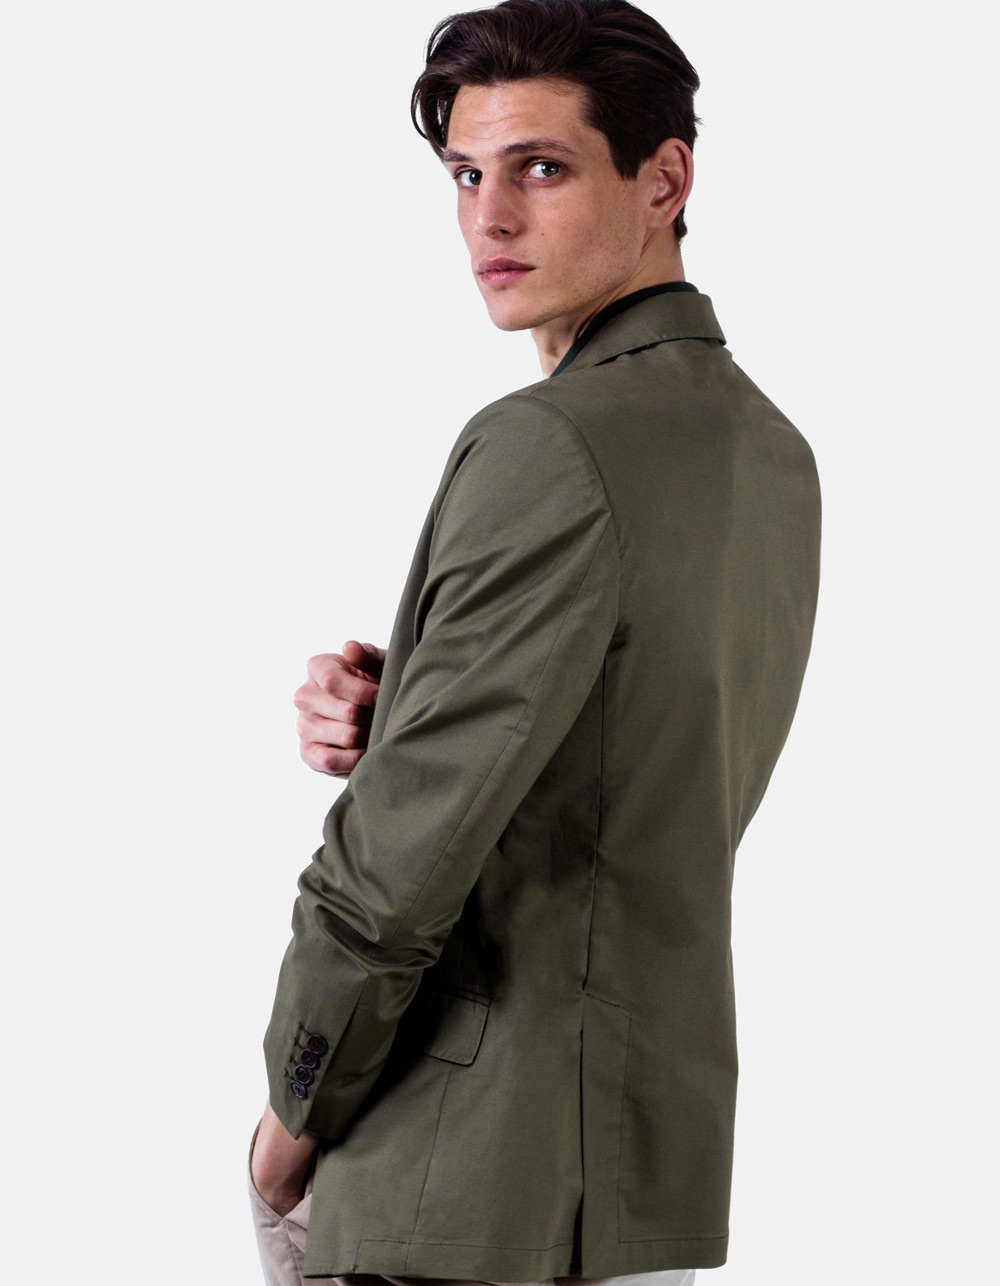 Green plain blazer - Backside